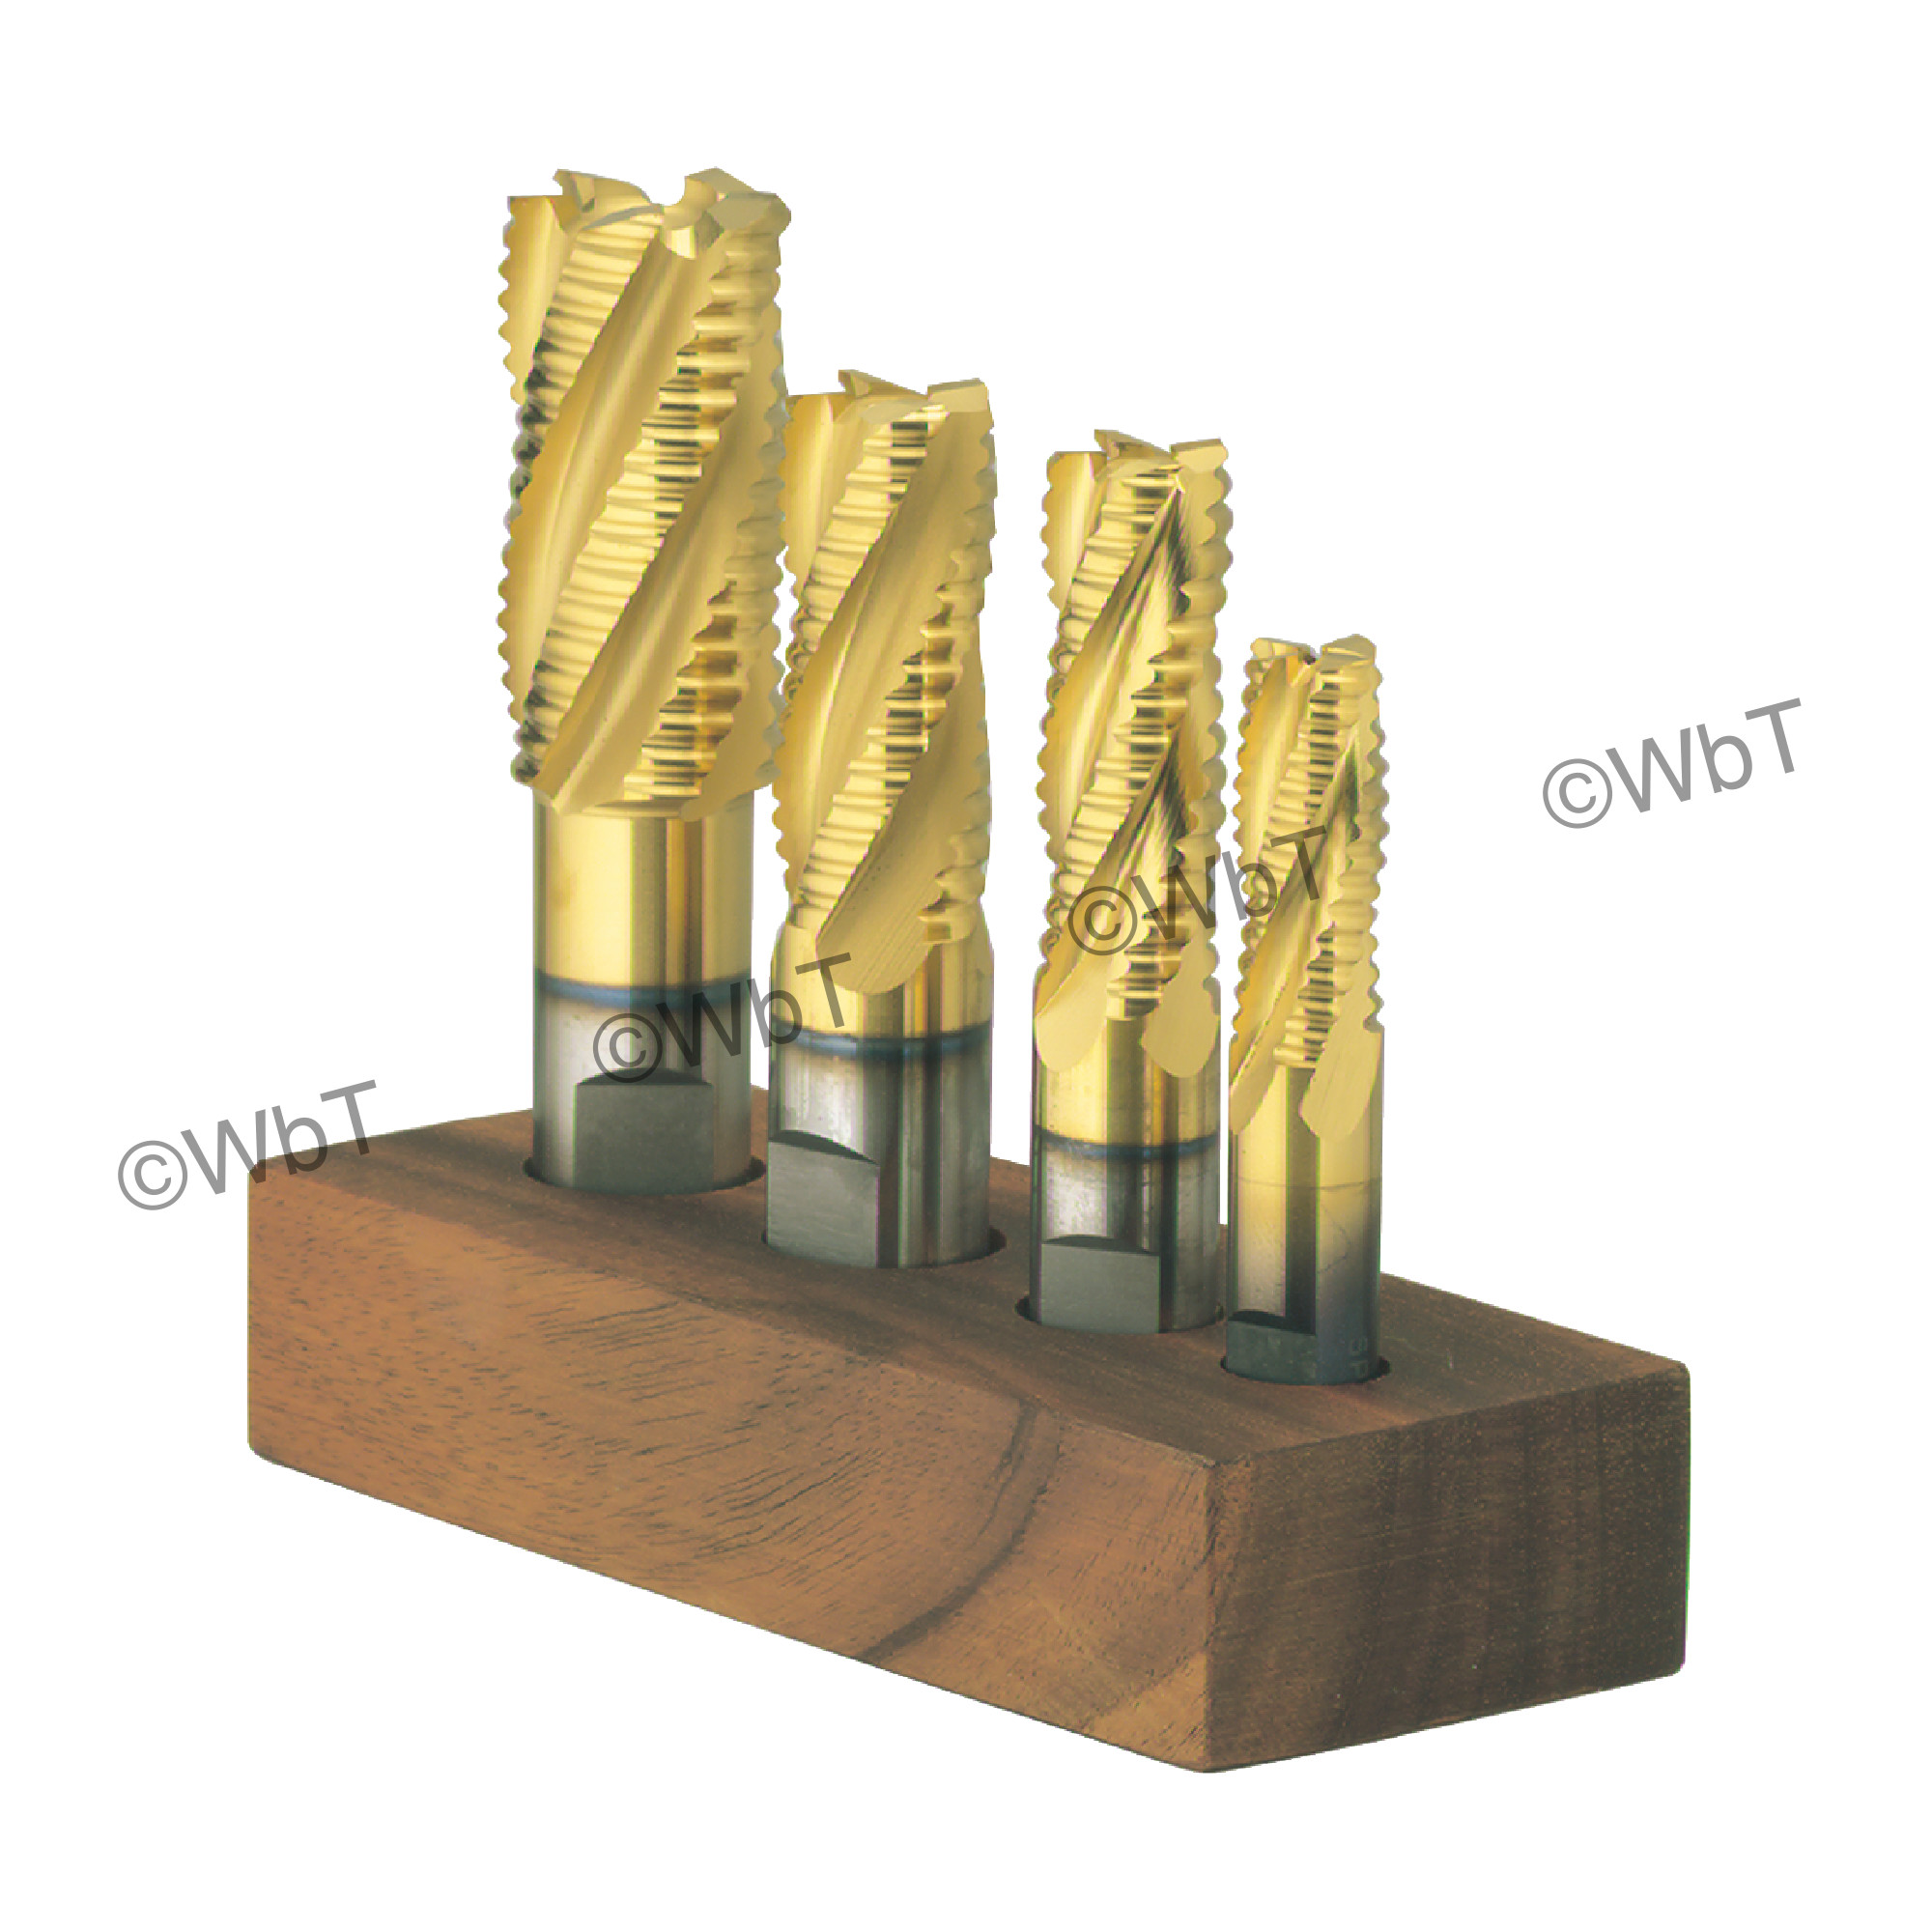 4 Piece M42 Cobalt Coarse Tooth Roughing Single End Mill Set